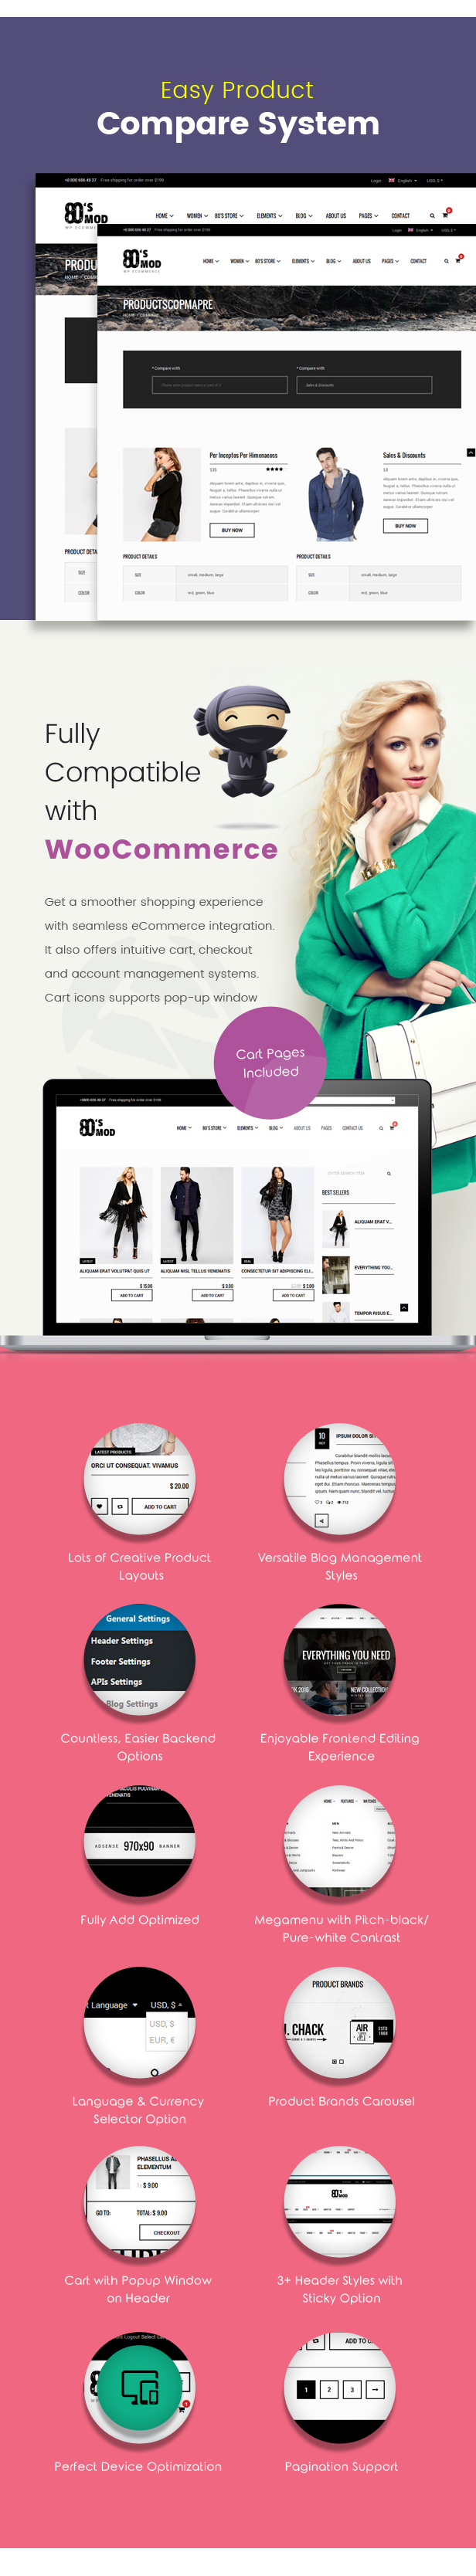 80's Mod - Build Your Store with A Vintage Styled WooCommerce WordPress Theme - 4